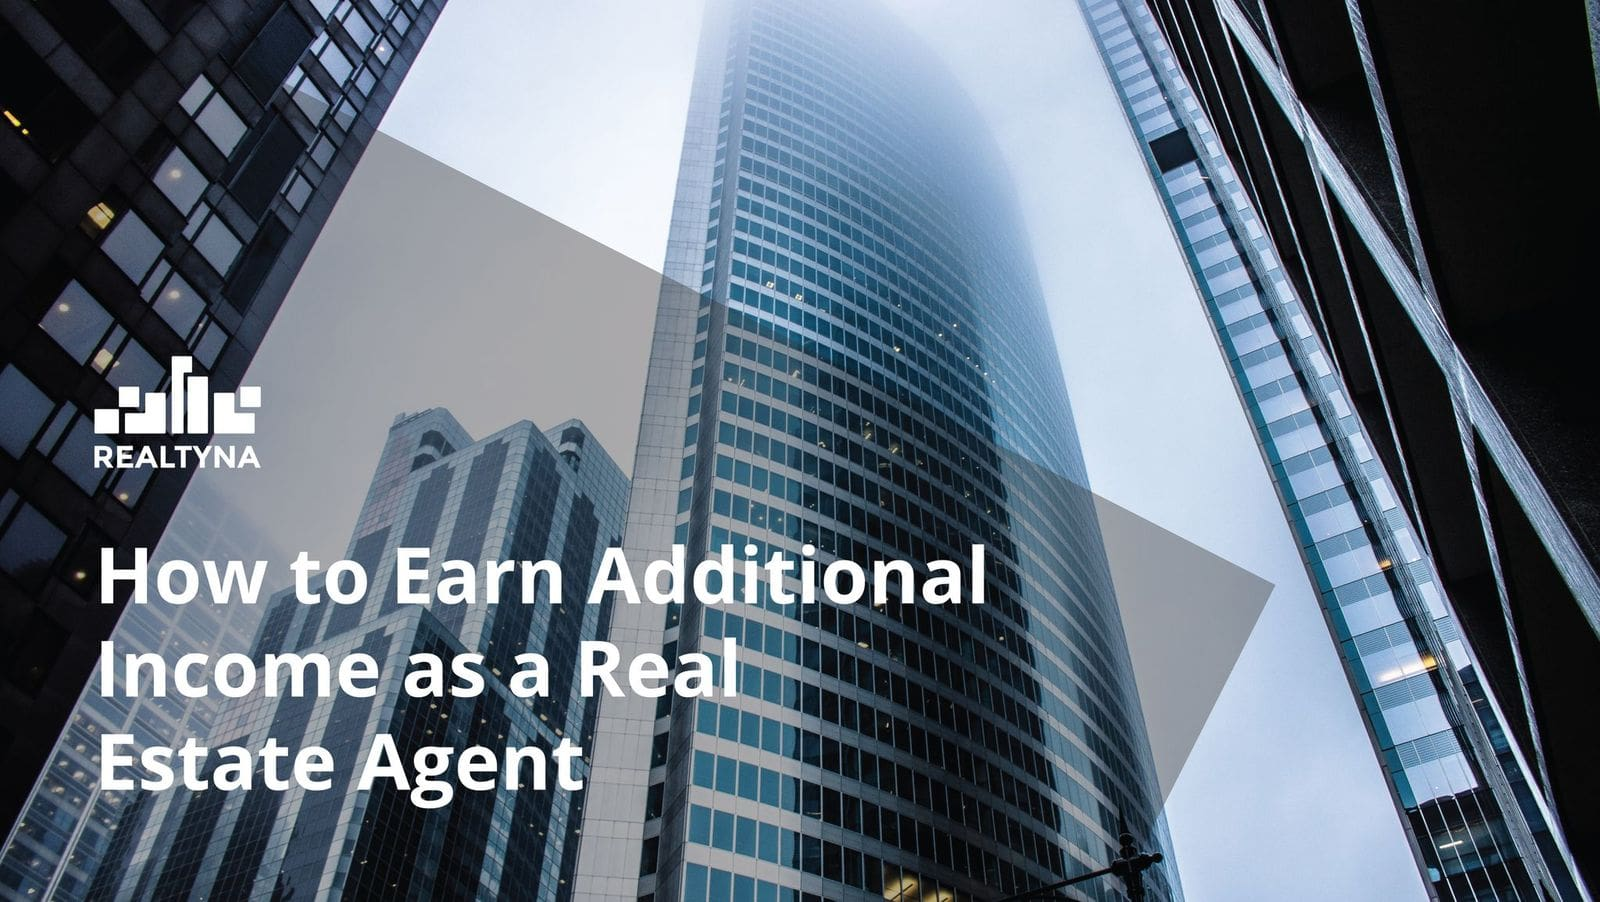 How to Earn Additional Income as a Real Estate Agent